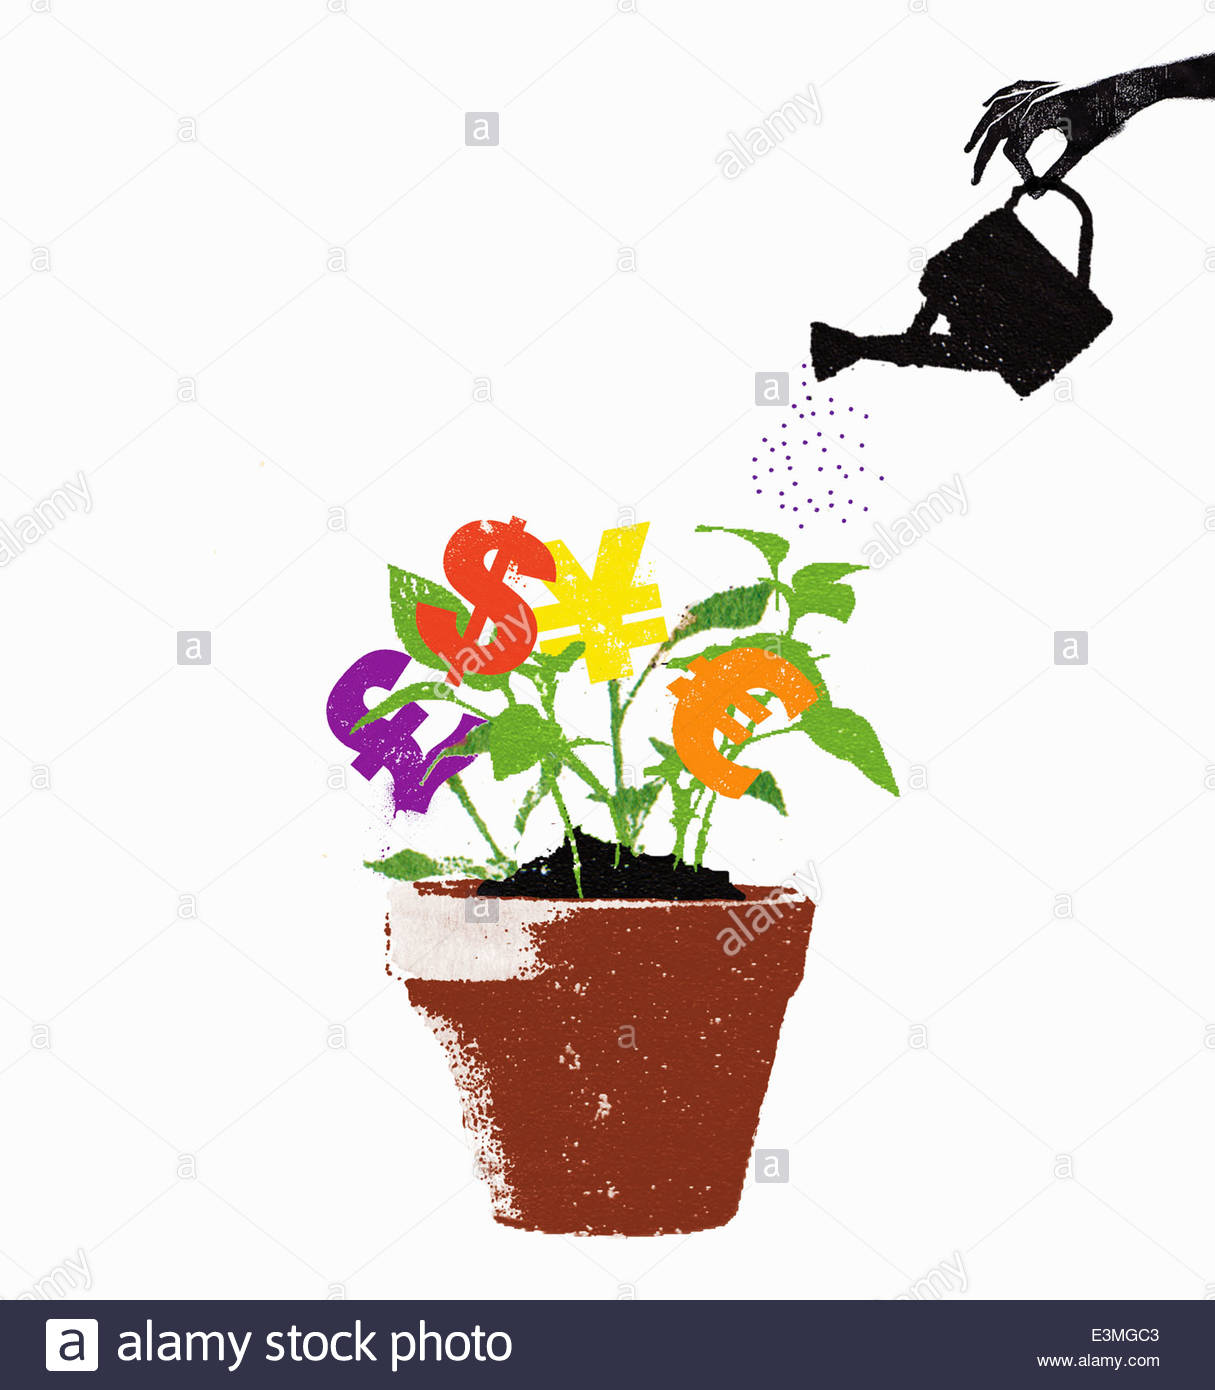 Hand watering international currency symbols de plus en plante en pot Photo Stock